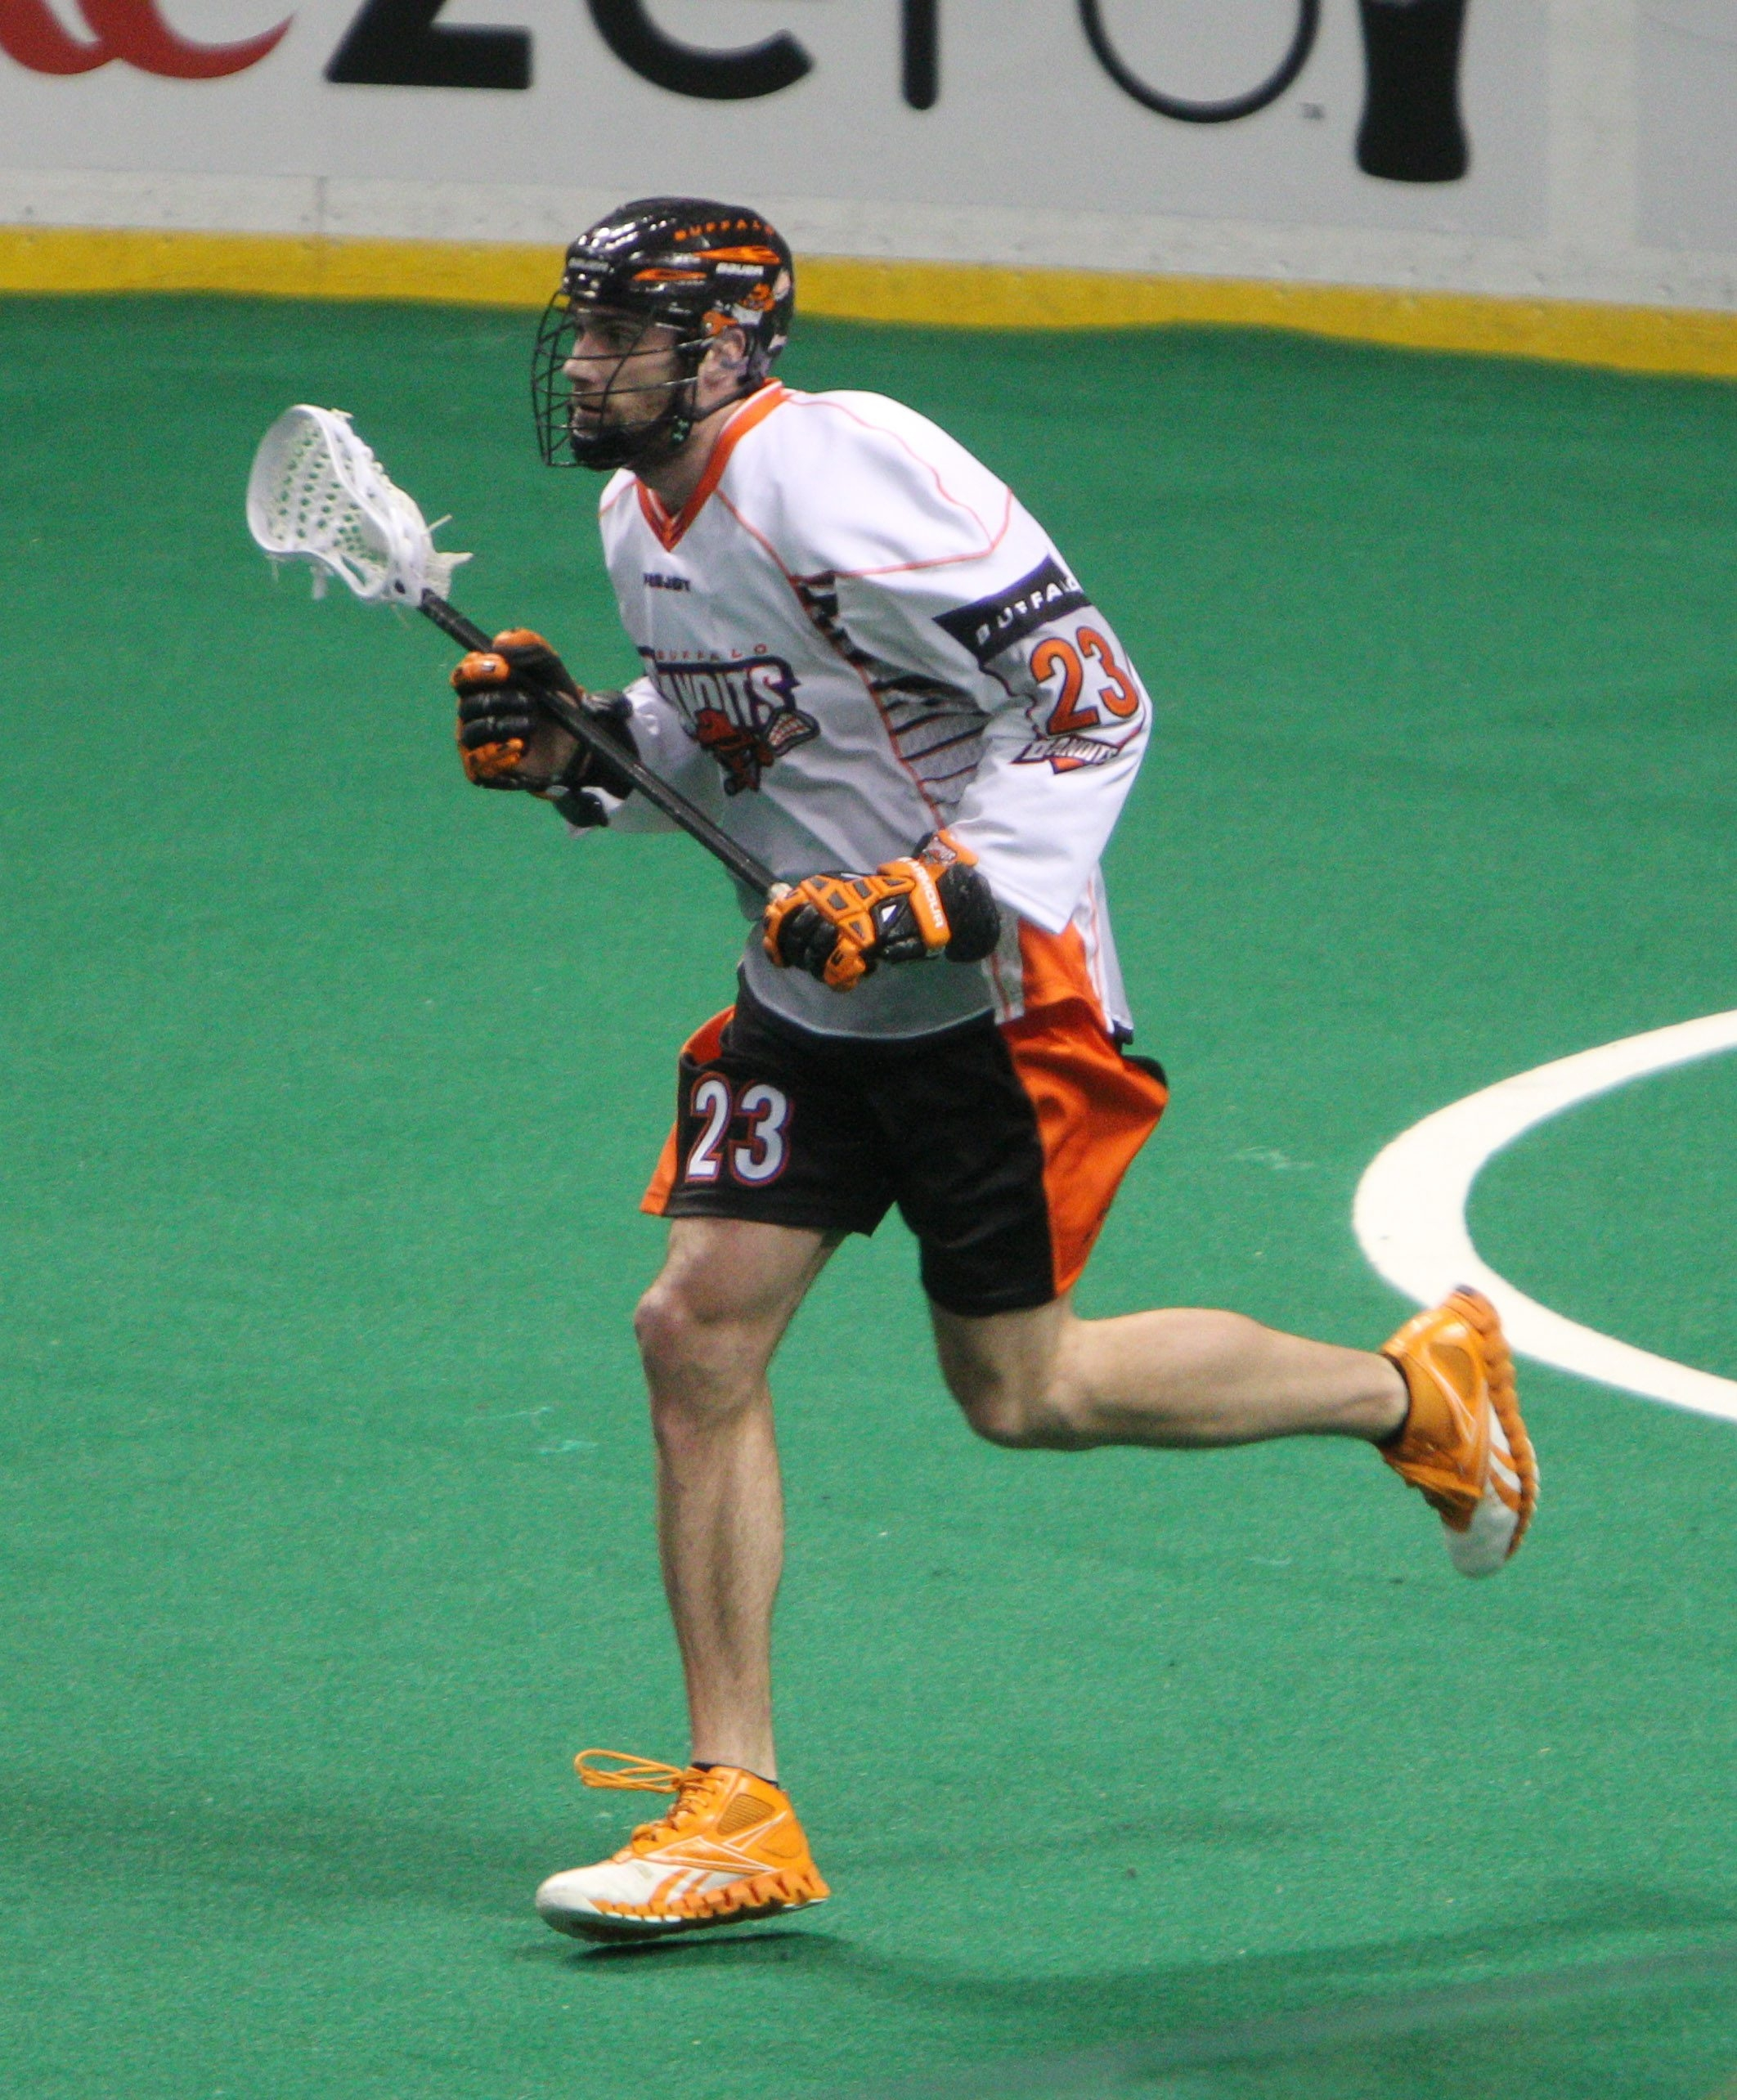 Steve Priolo, who turns 25 next week, is in his fifth Bandits season.